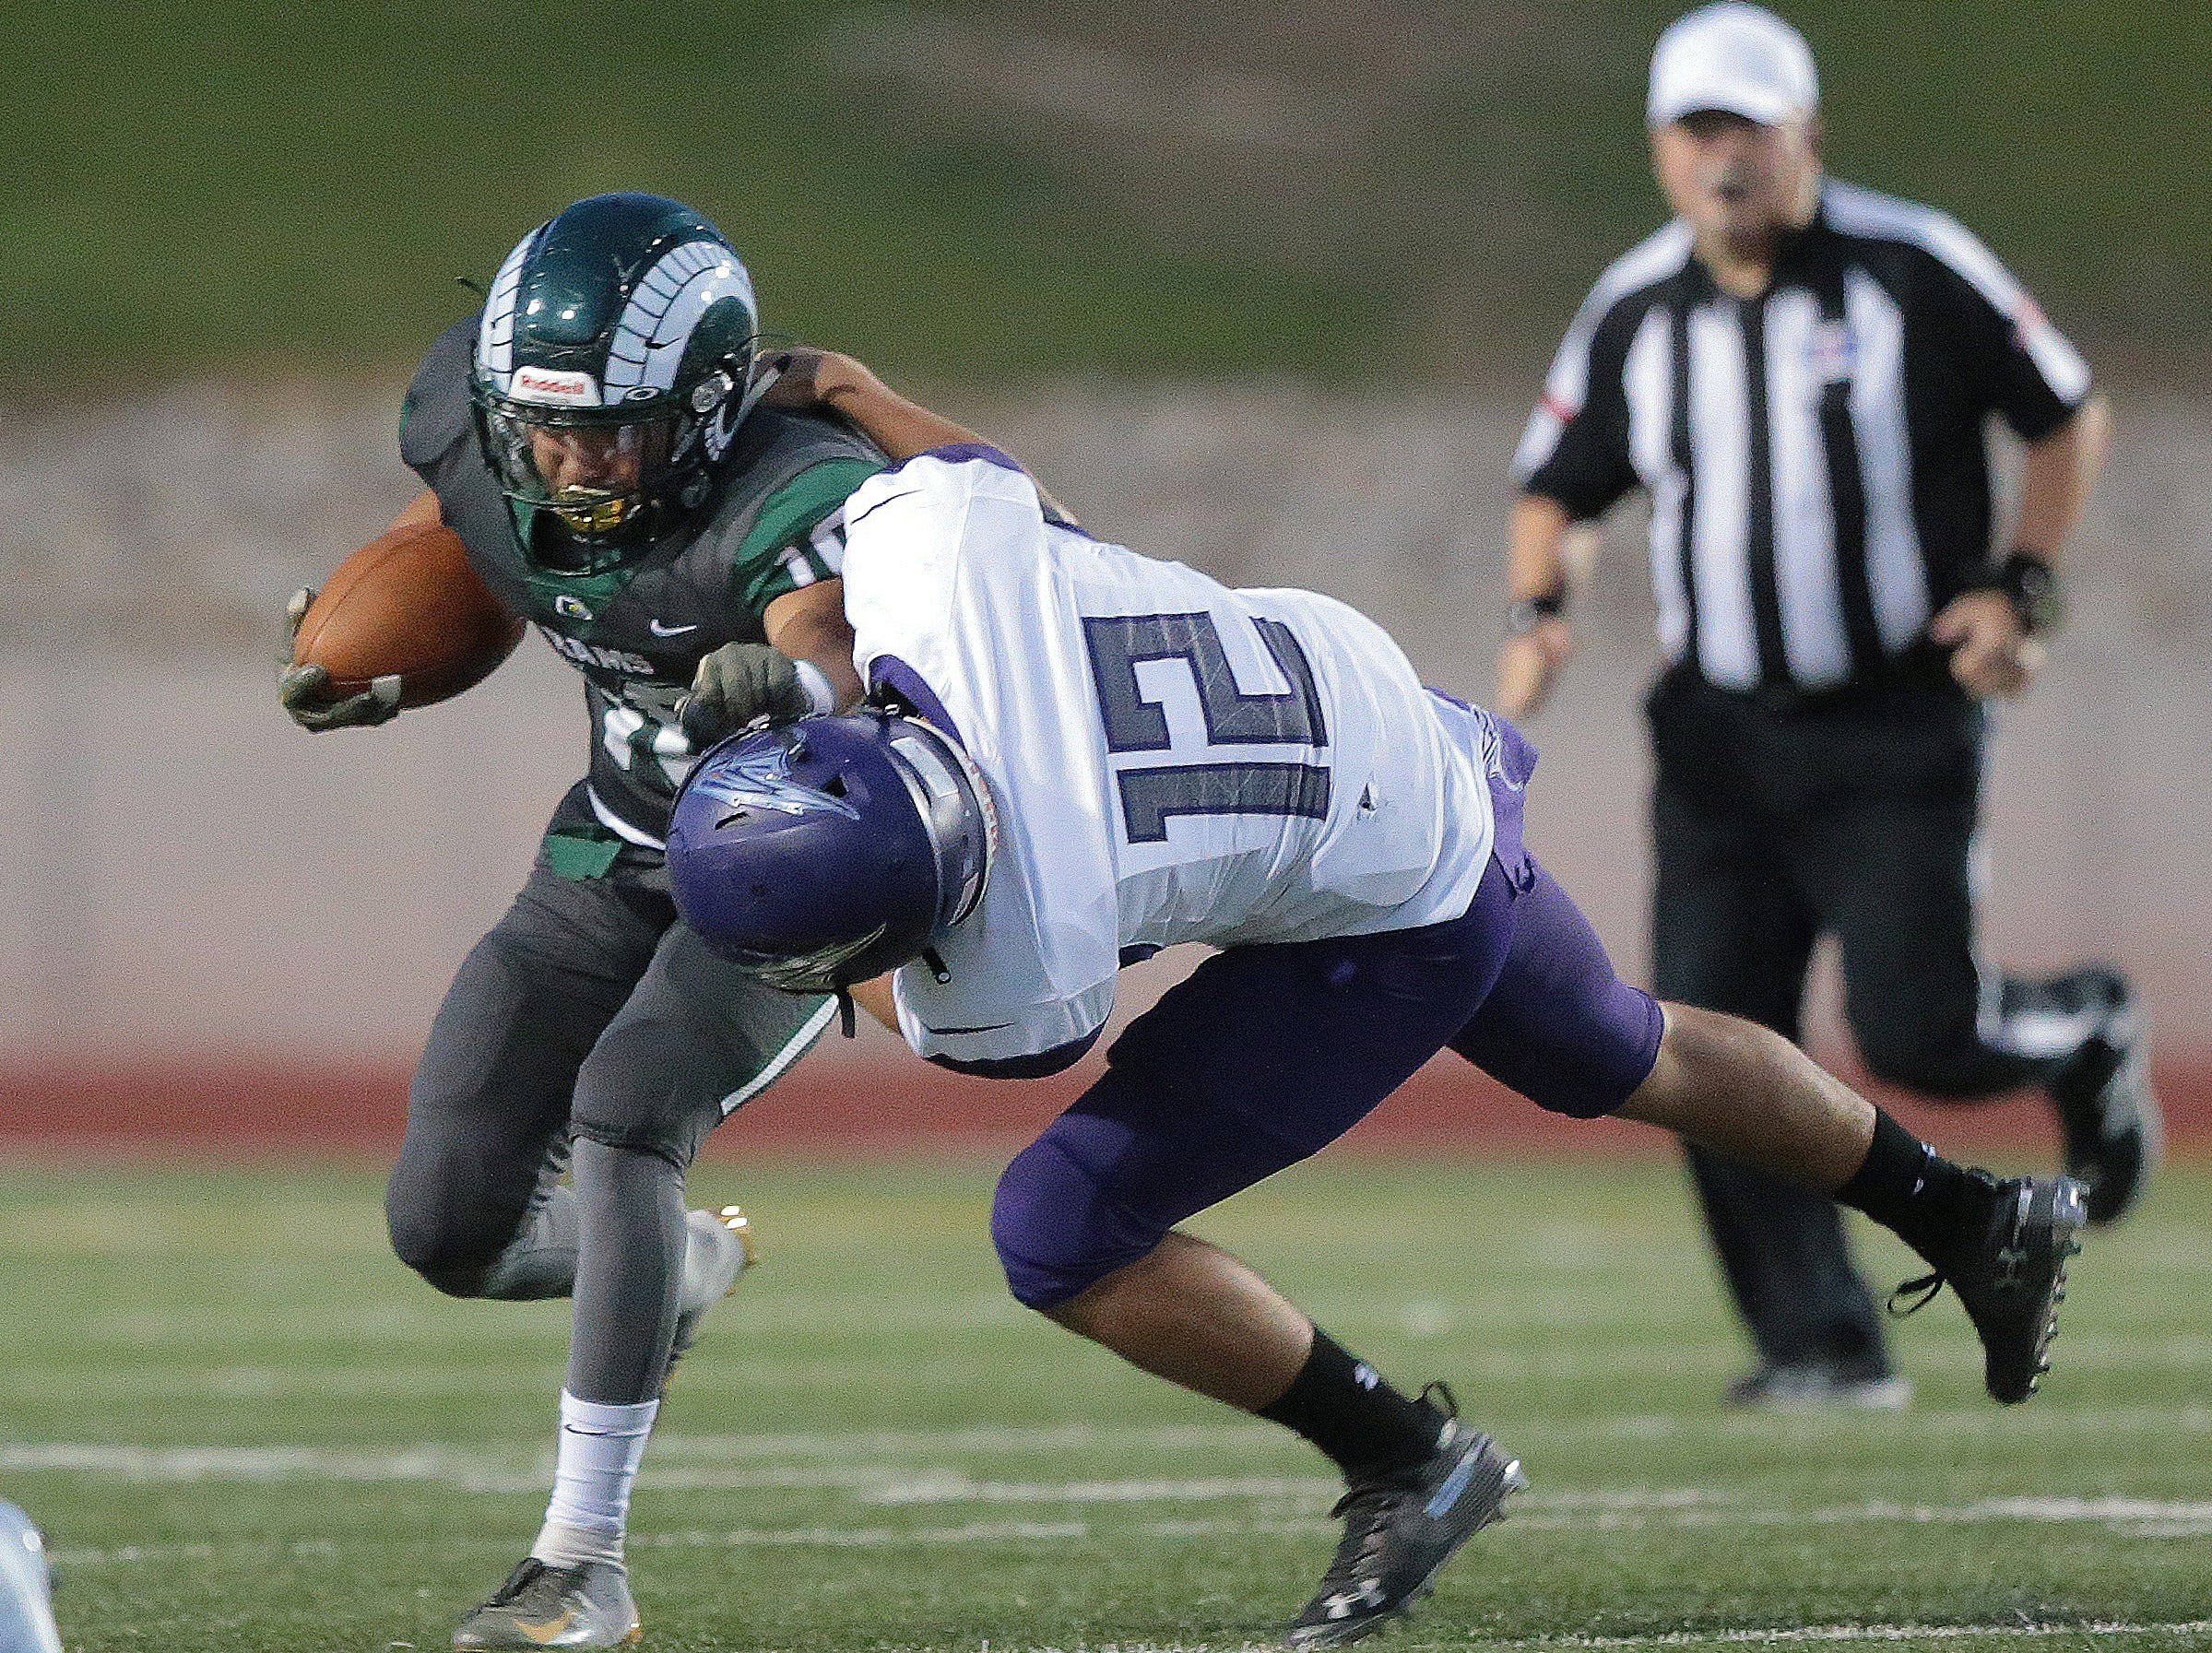 Montwood and Eastlake met Friday night at the SAC.